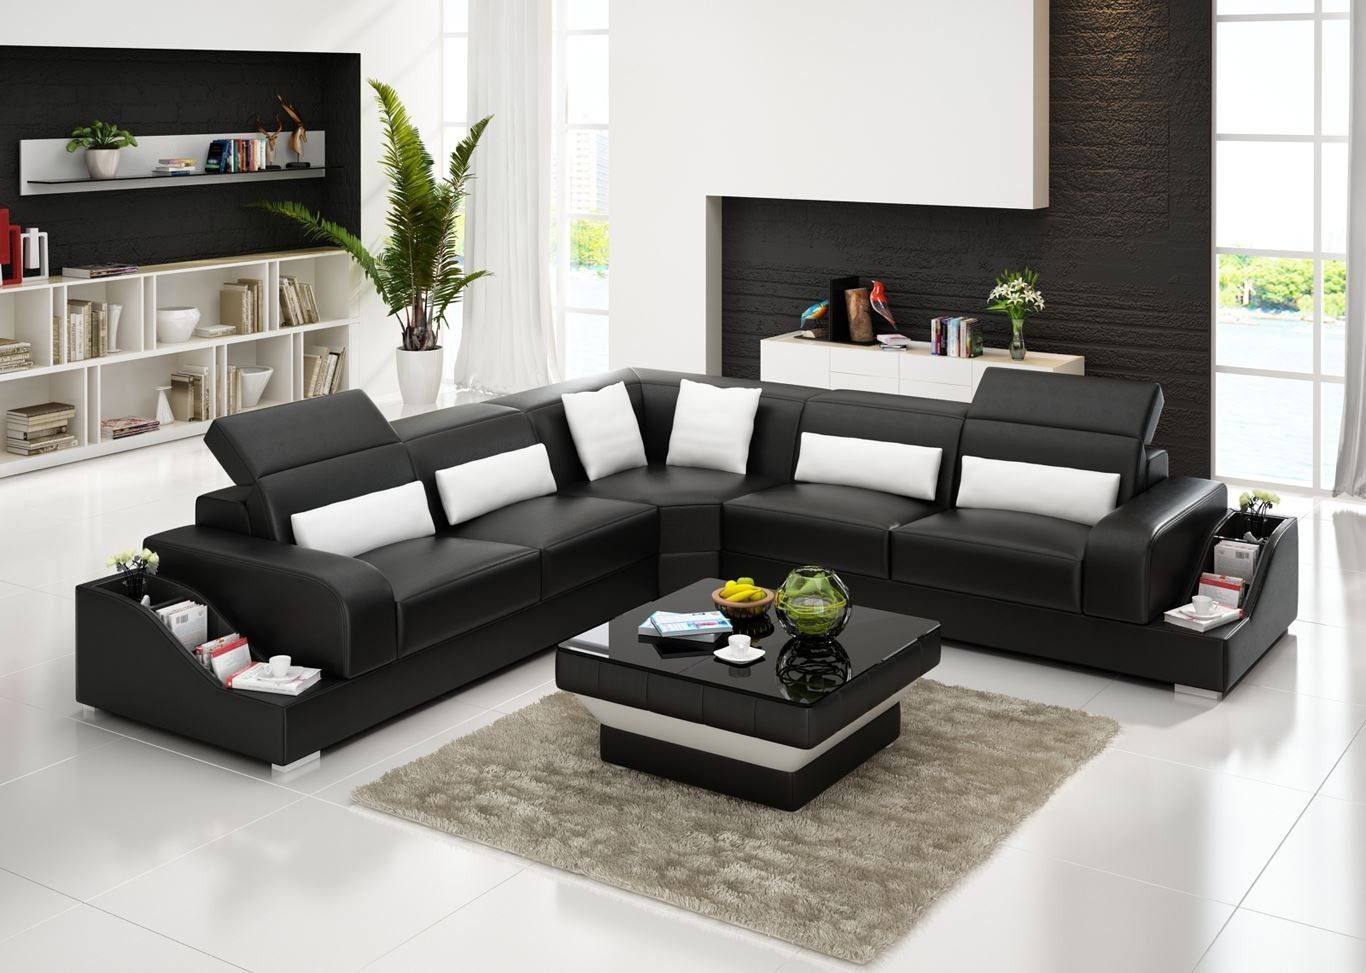 New Design Big Size Living Room Sofa Set With Storage Function